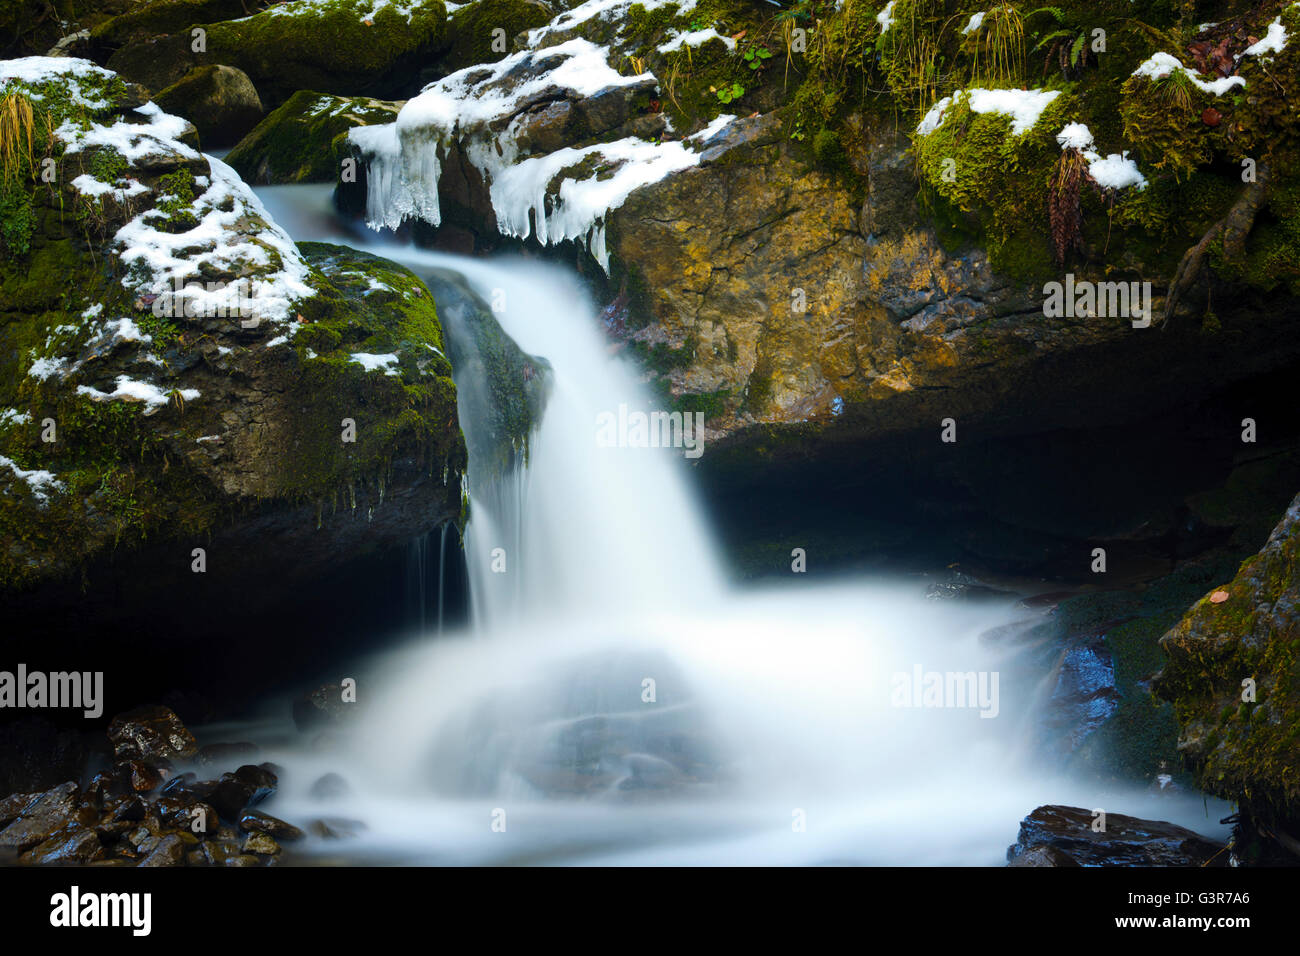 Small waterfall during winter with motion blur, Haute Savoie, France. - Stock Image